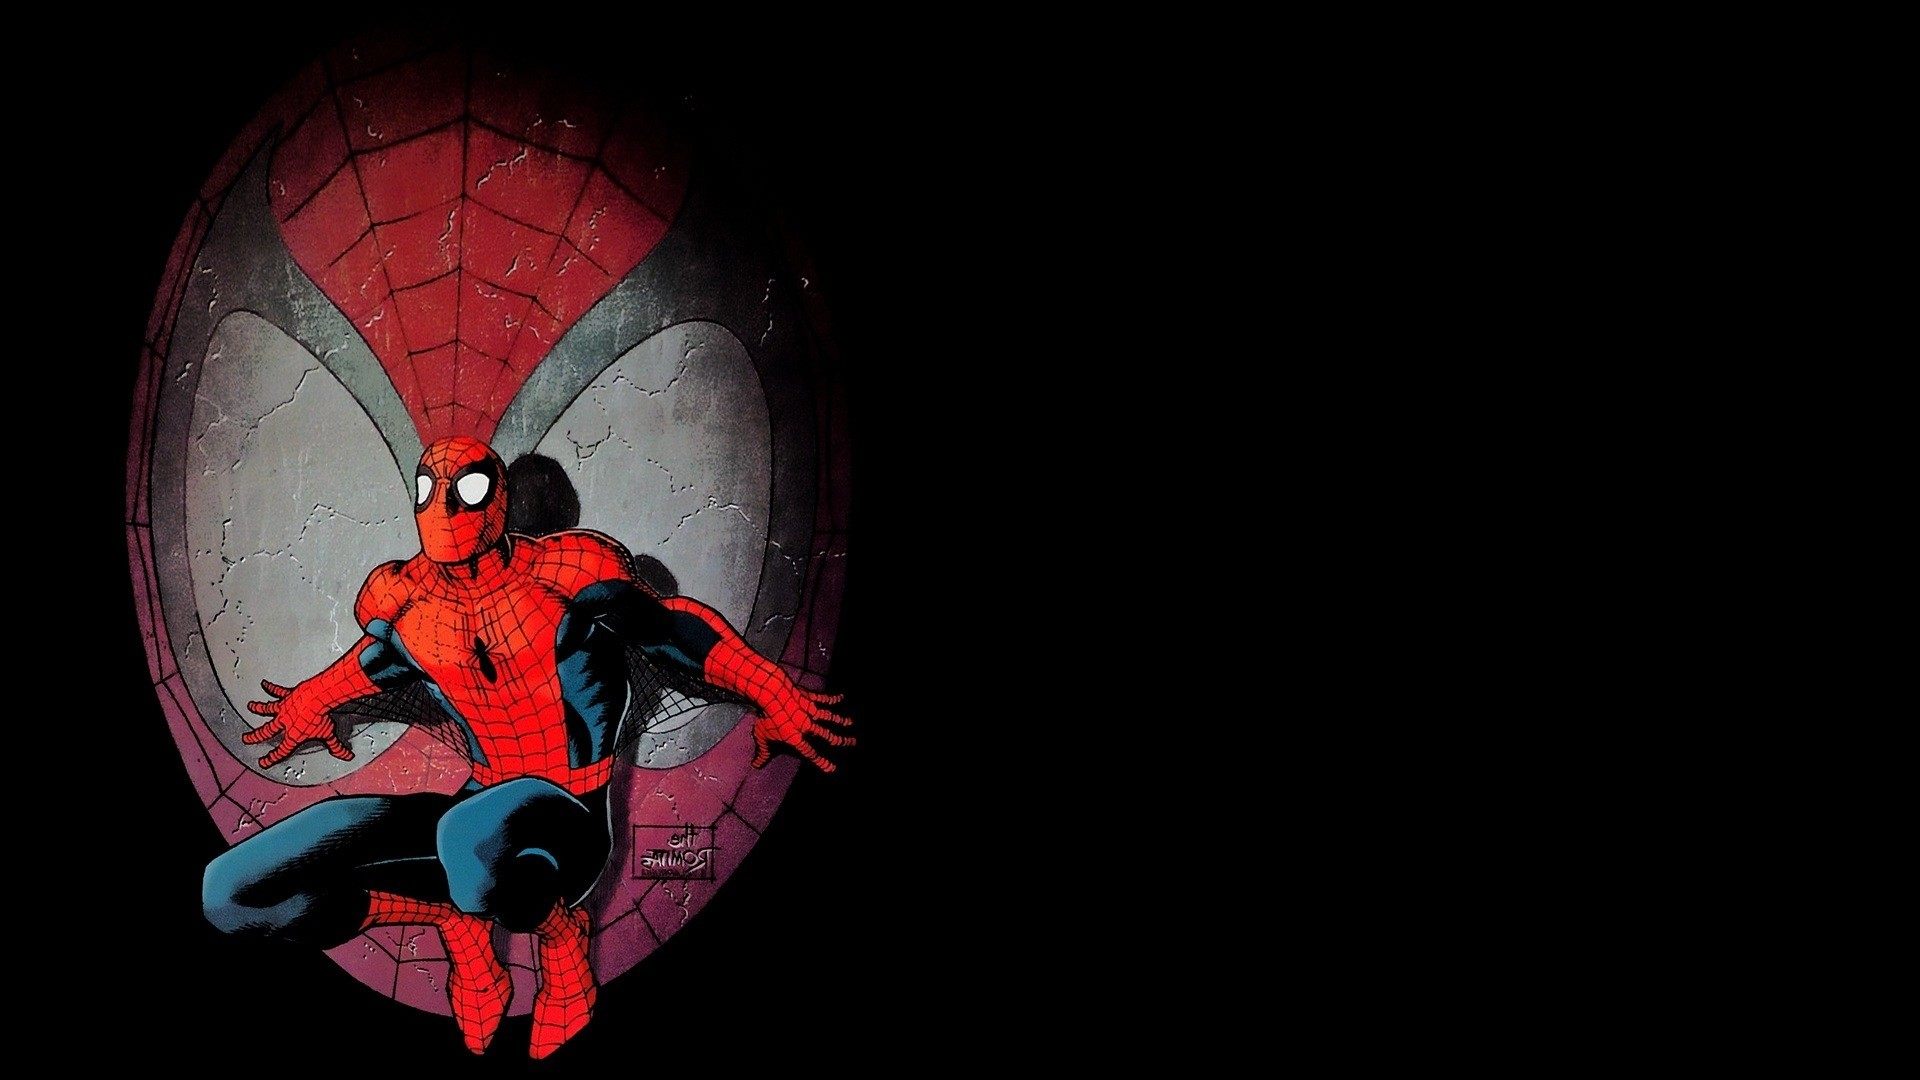 10 Best Spider Man 2099 Wallpaper Hd Full Hd 1920 1080 For: Spiderman 2018 Wallpaper (75+ Images